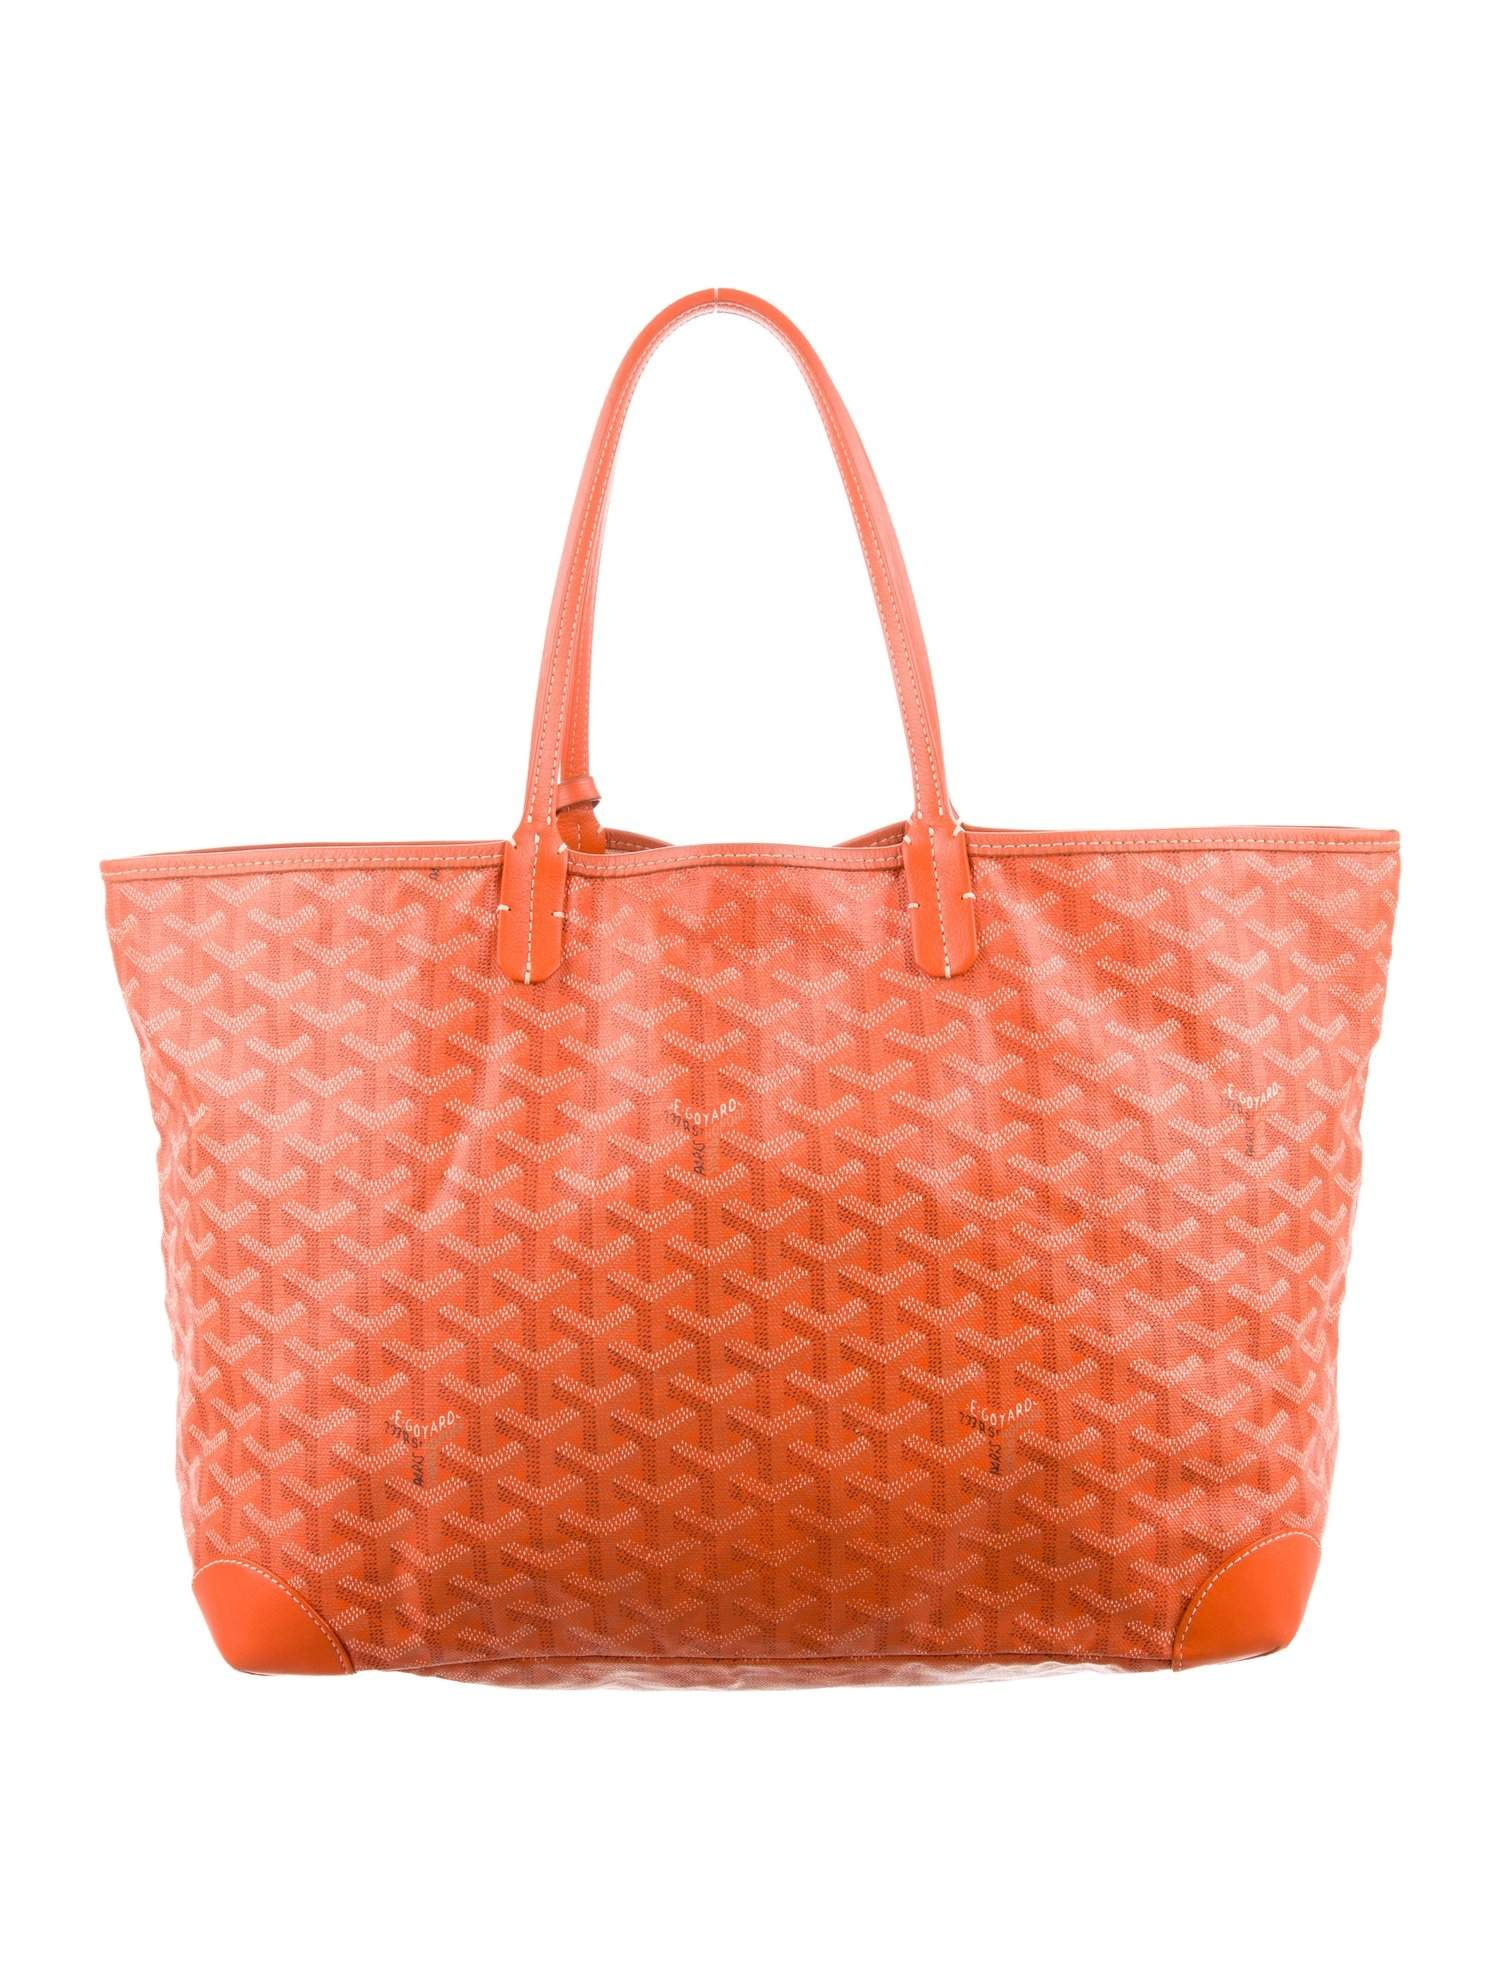 St. Louis Tote by Goyard, available on therealreal.com for $1195 Kendall Jenner Bags Exact Product